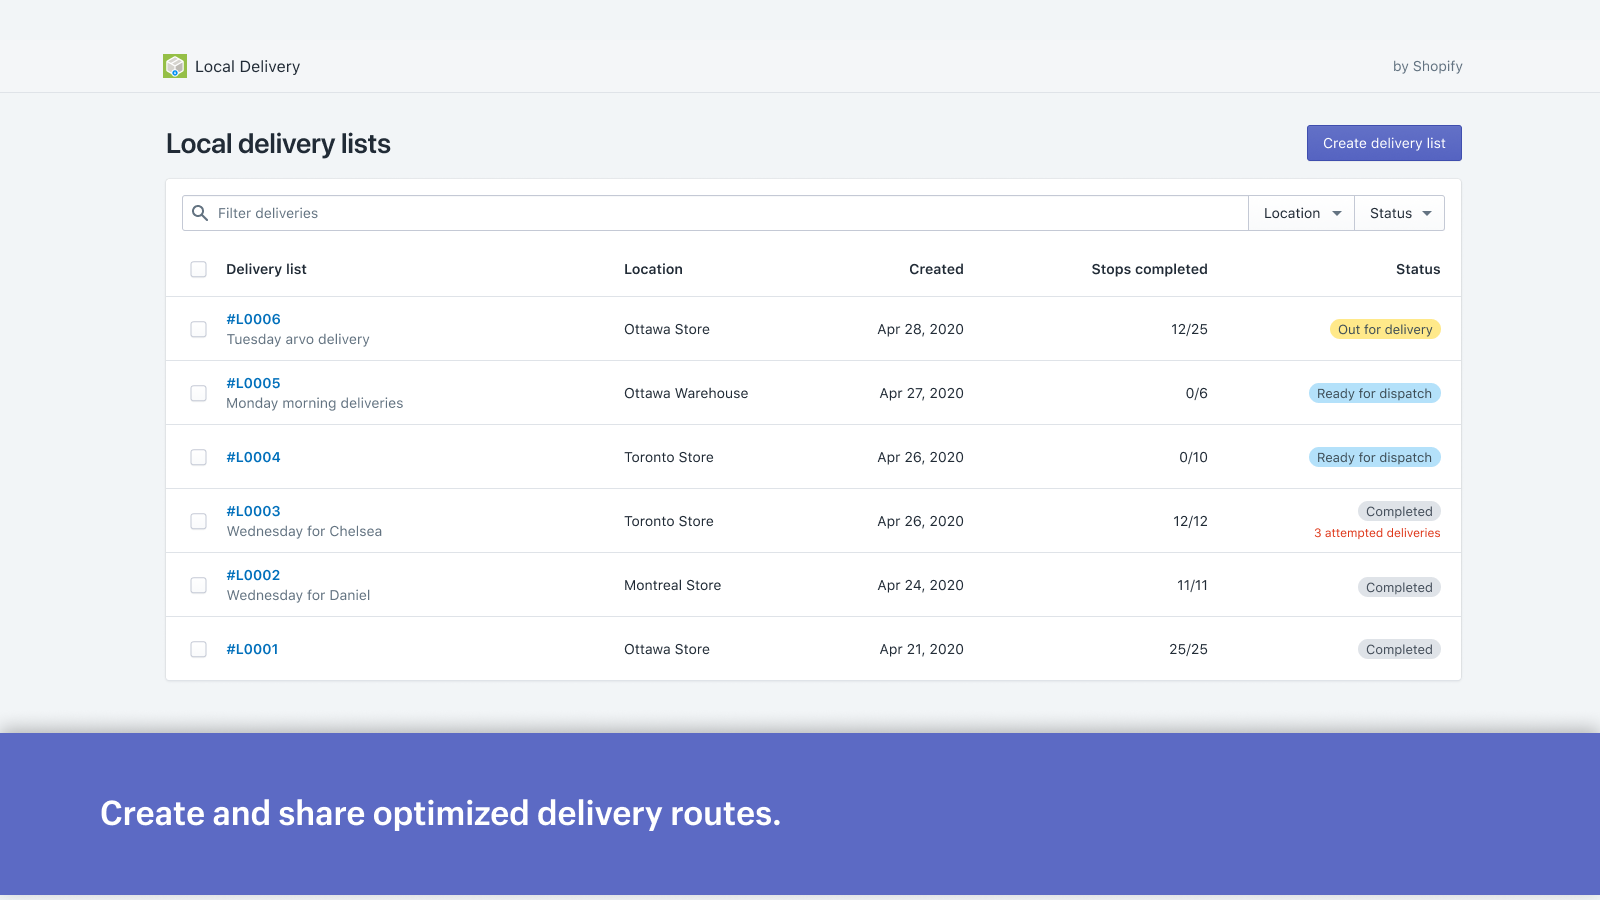 Create and share optimized delivery routes